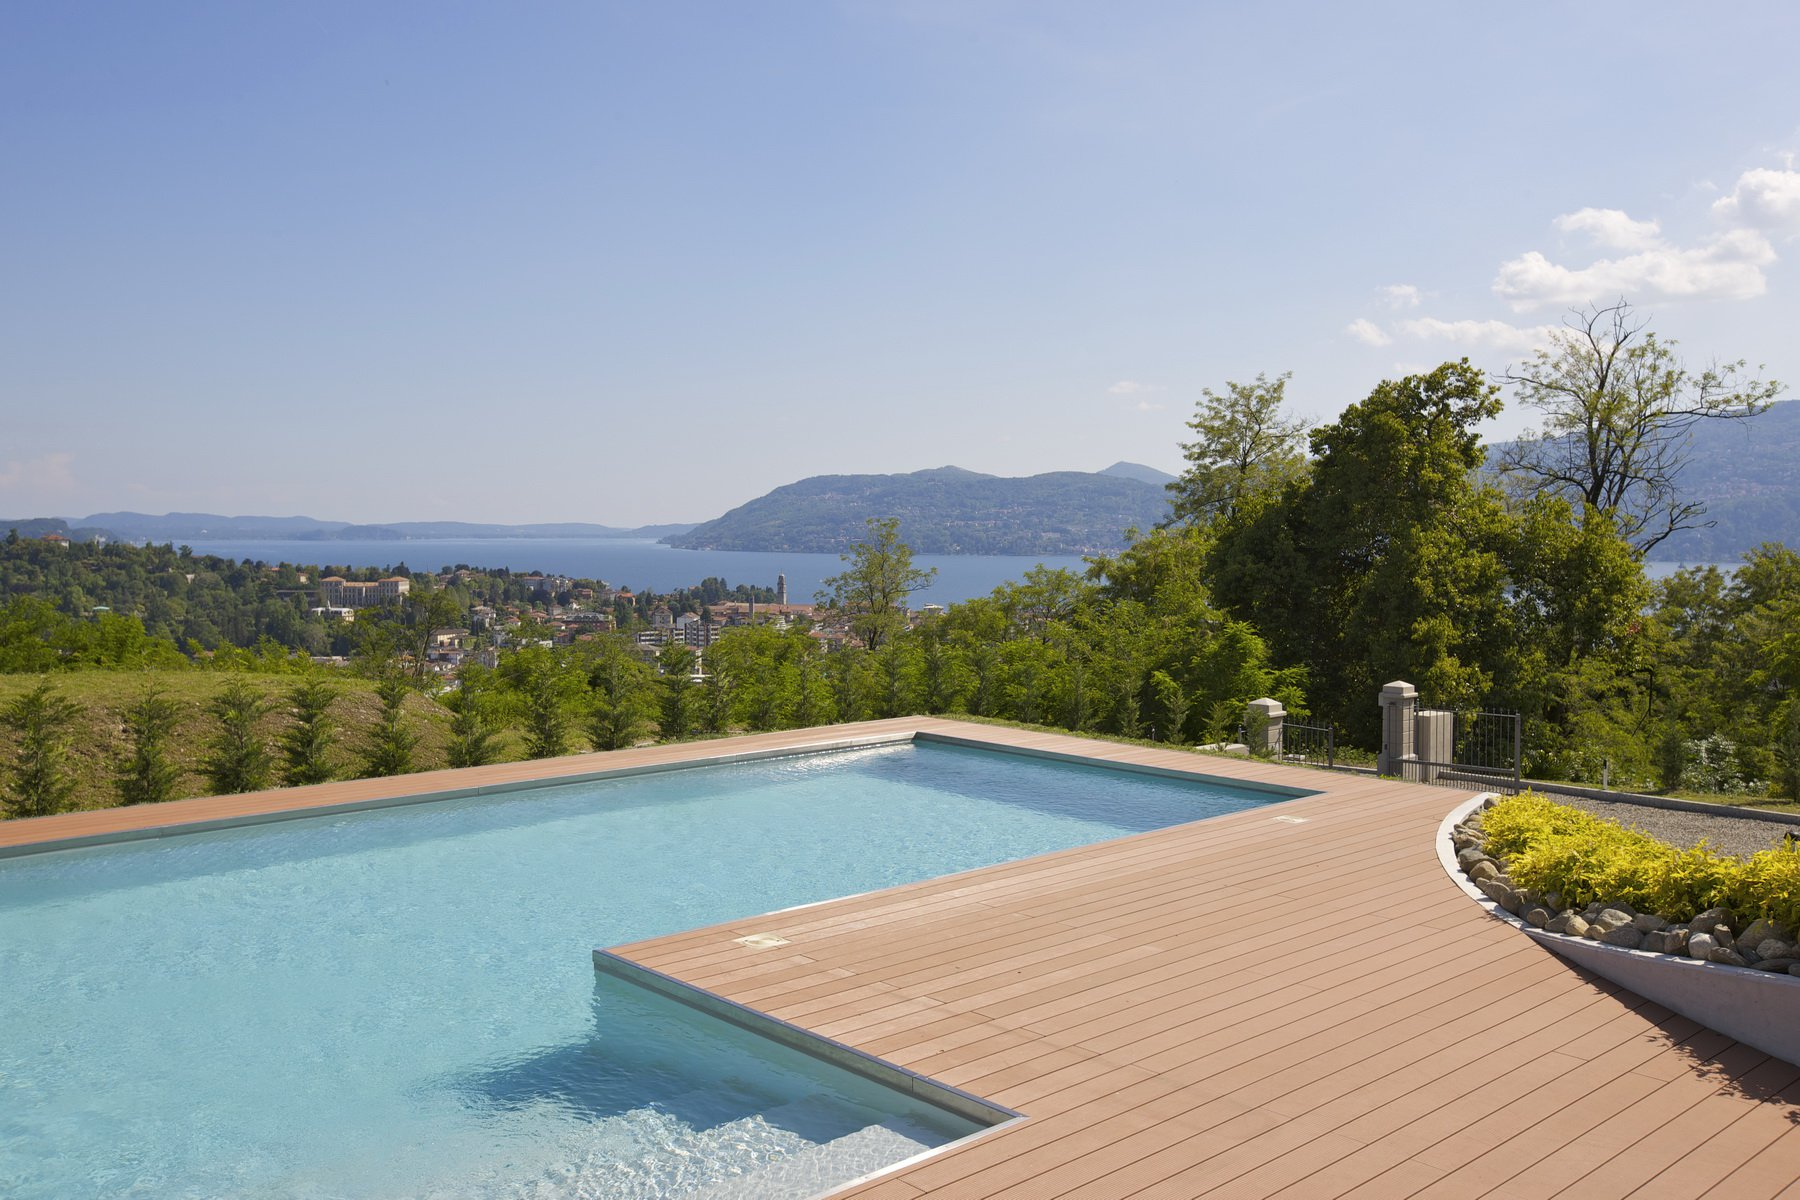 Prestigiosa villa con piscina in vendita a Verbania - piscina interrata